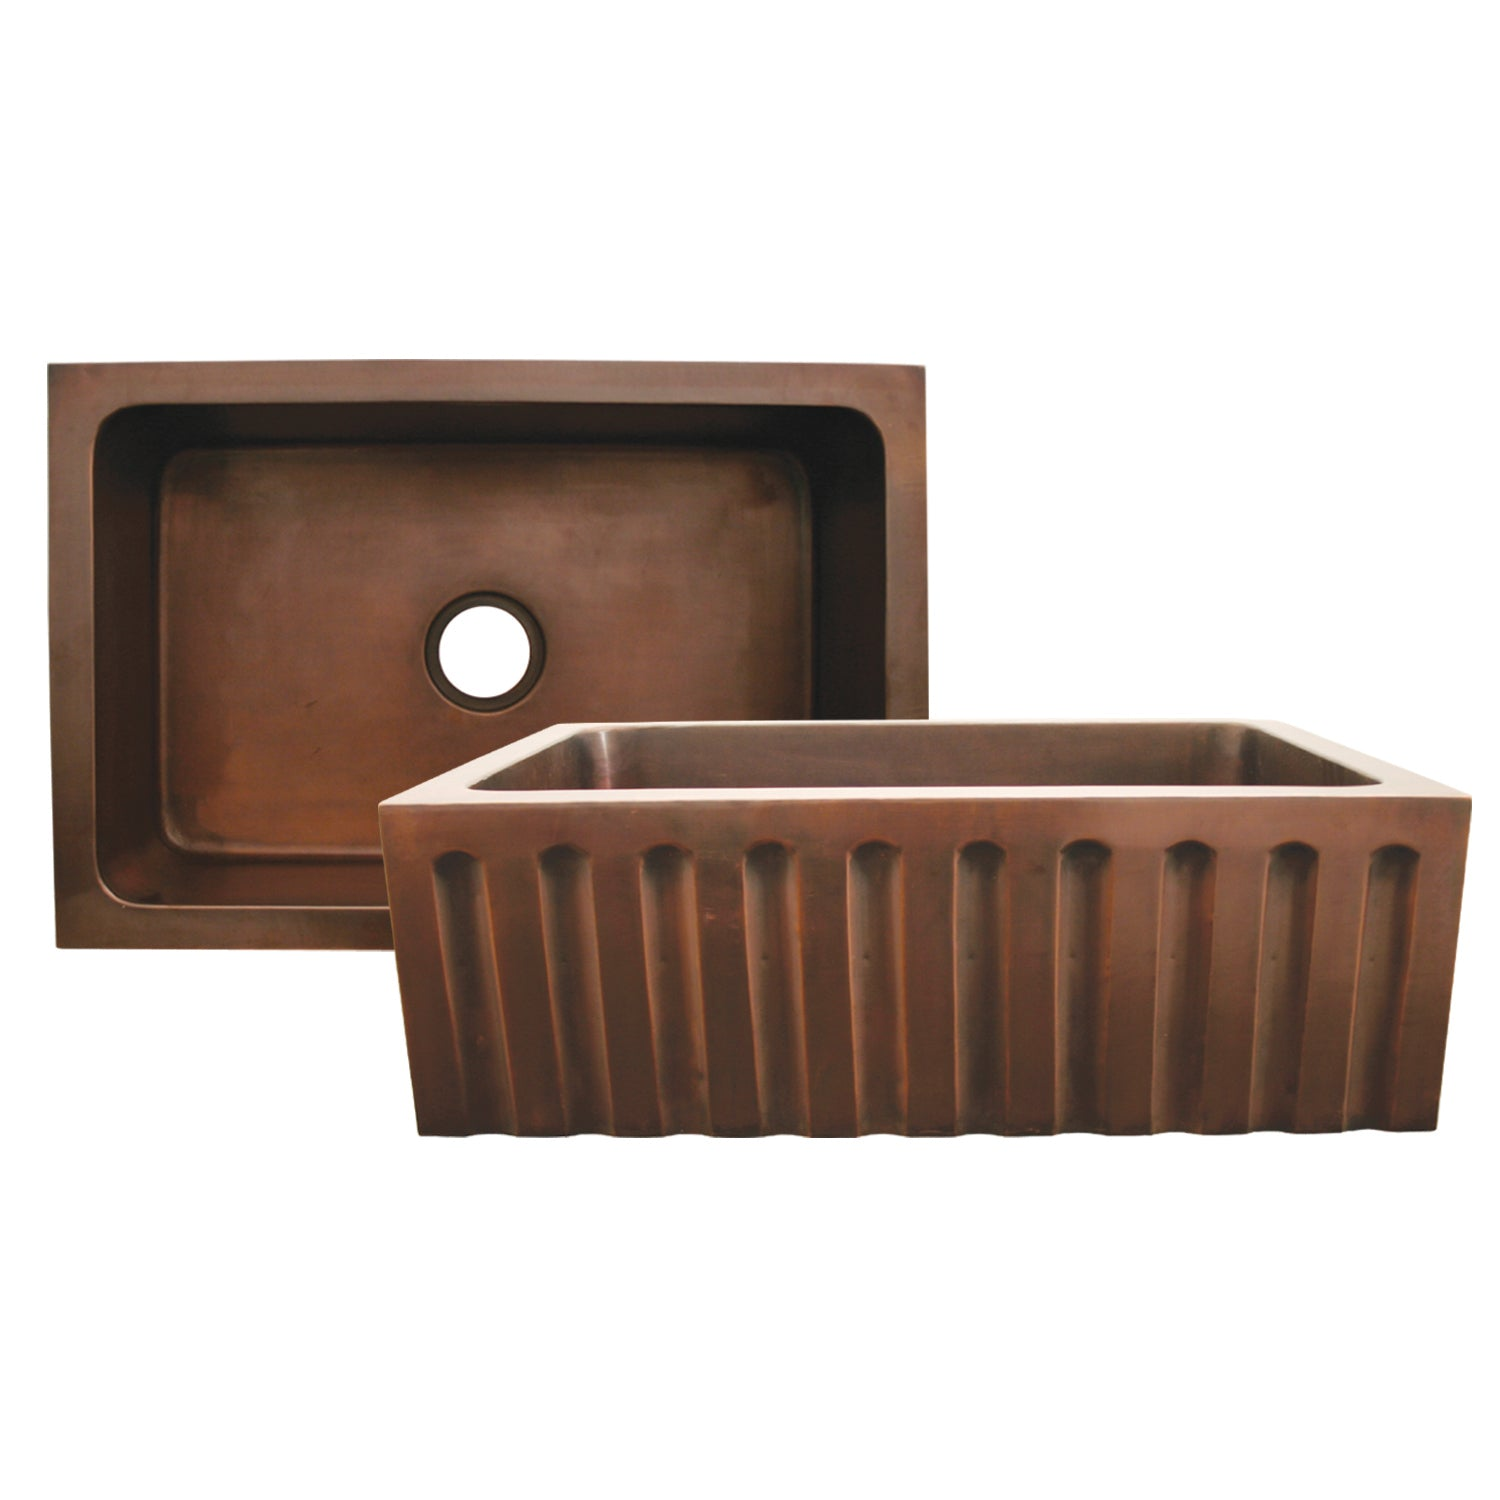 "Copperhaus 30"" Rectangular Undermount Sink with a Fluted Design Front Apron"